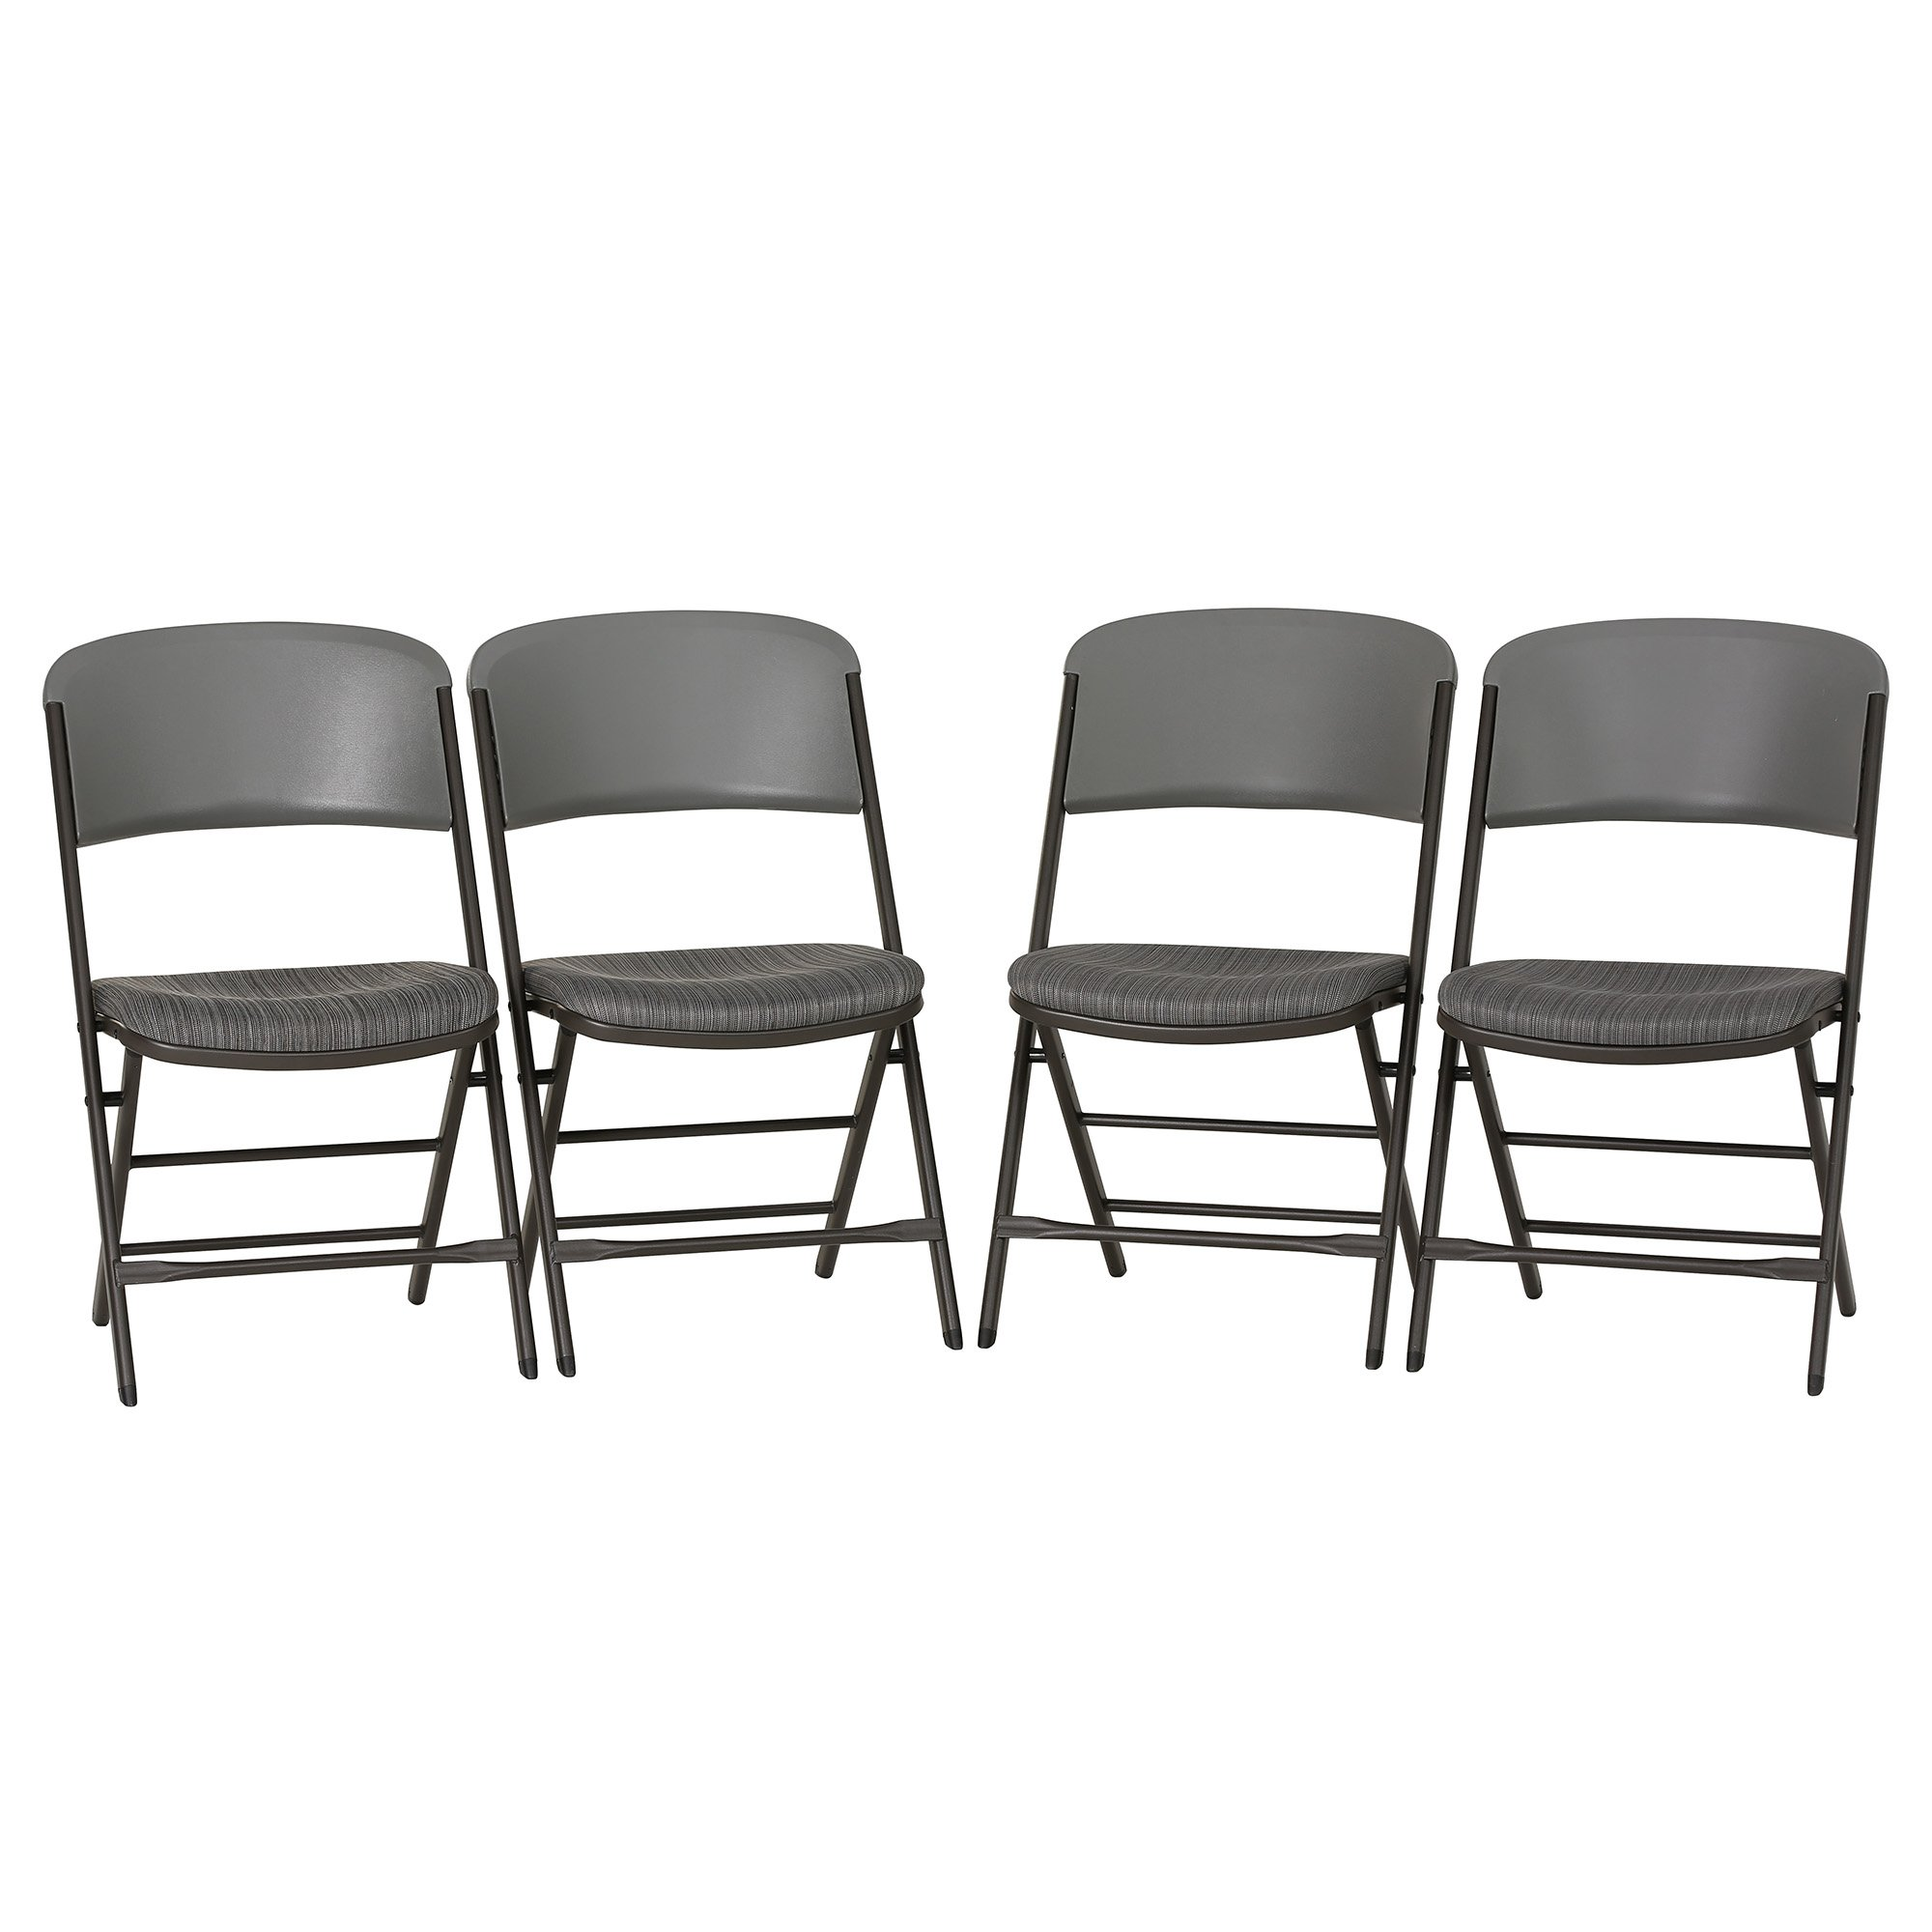 Lifetime 480426 Padded Commercial Folding Chair, 4-pack, Gray